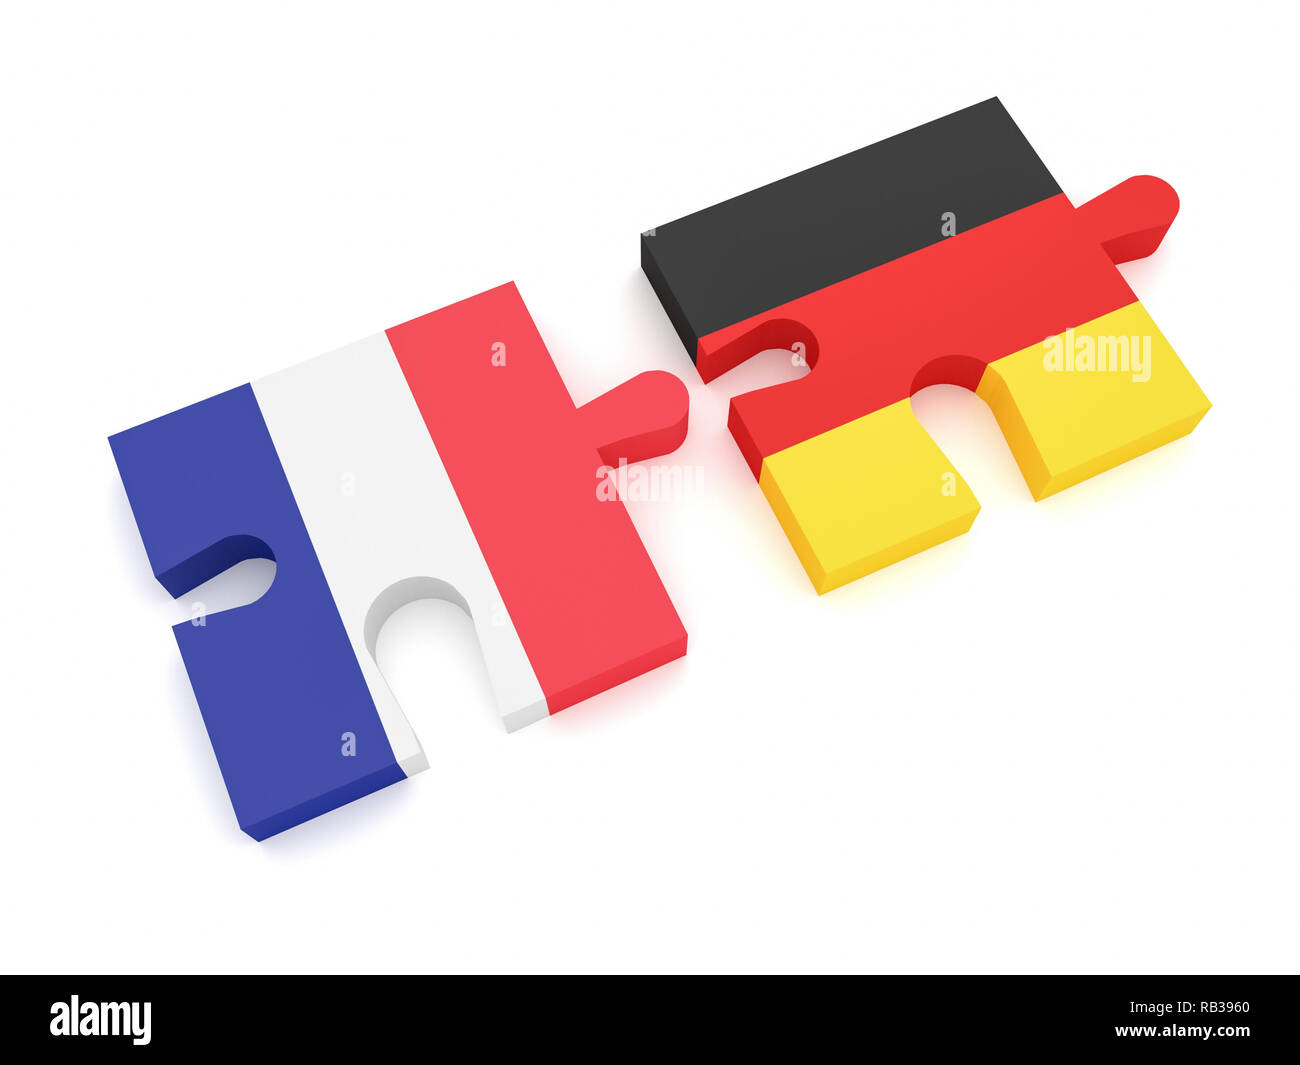 Germany France Partnership: German Flag And French Flag Puzzle Pieces, 3d illustration on white background - Stock Image